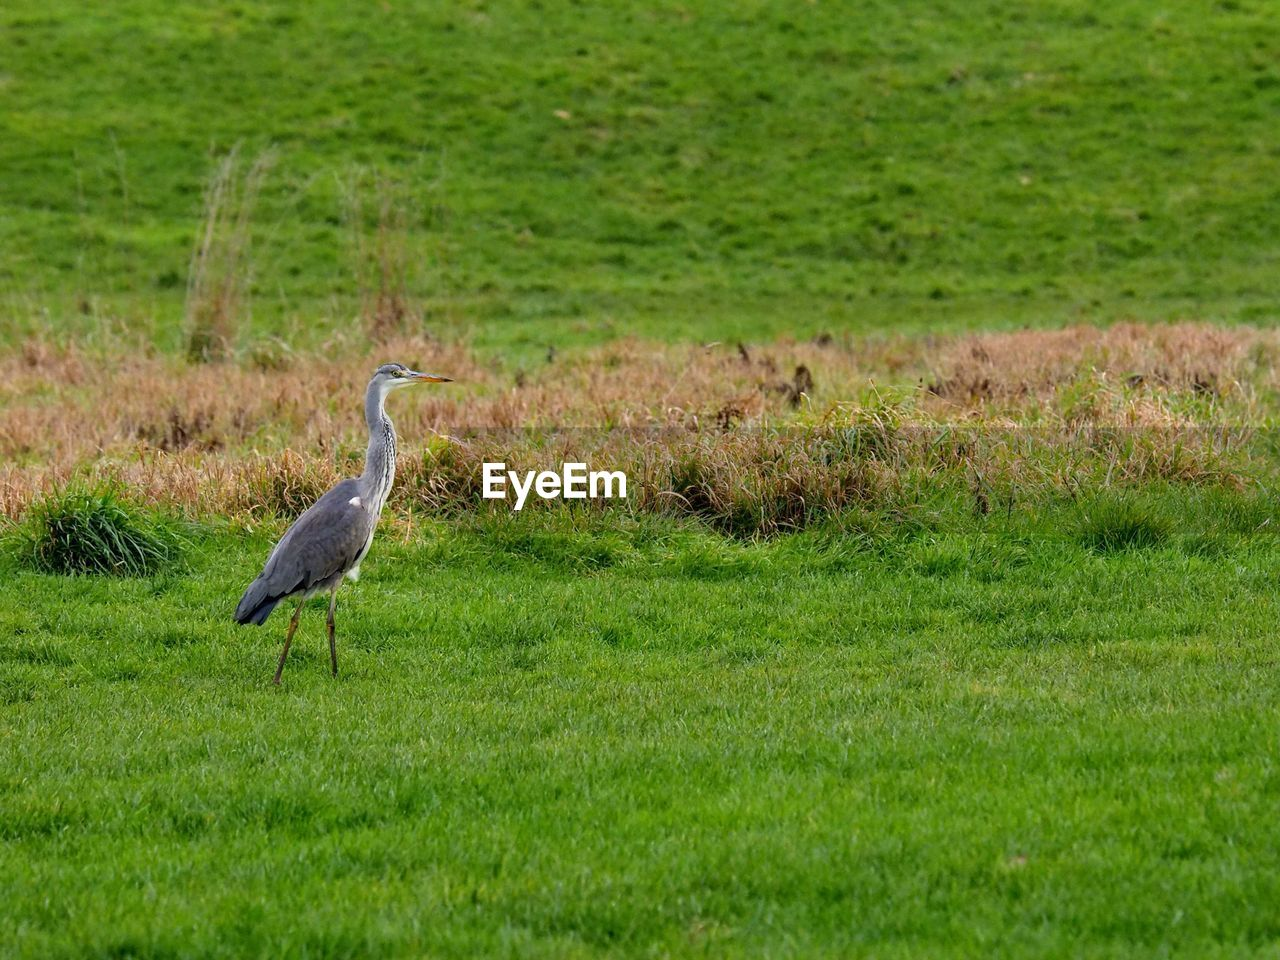 animal wildlife, grass, animal themes, animals in the wild, one animal, vertebrate, animal, bird, plant, land, green color, field, nature, no people, day, side view, environment, growth, landscape, heron